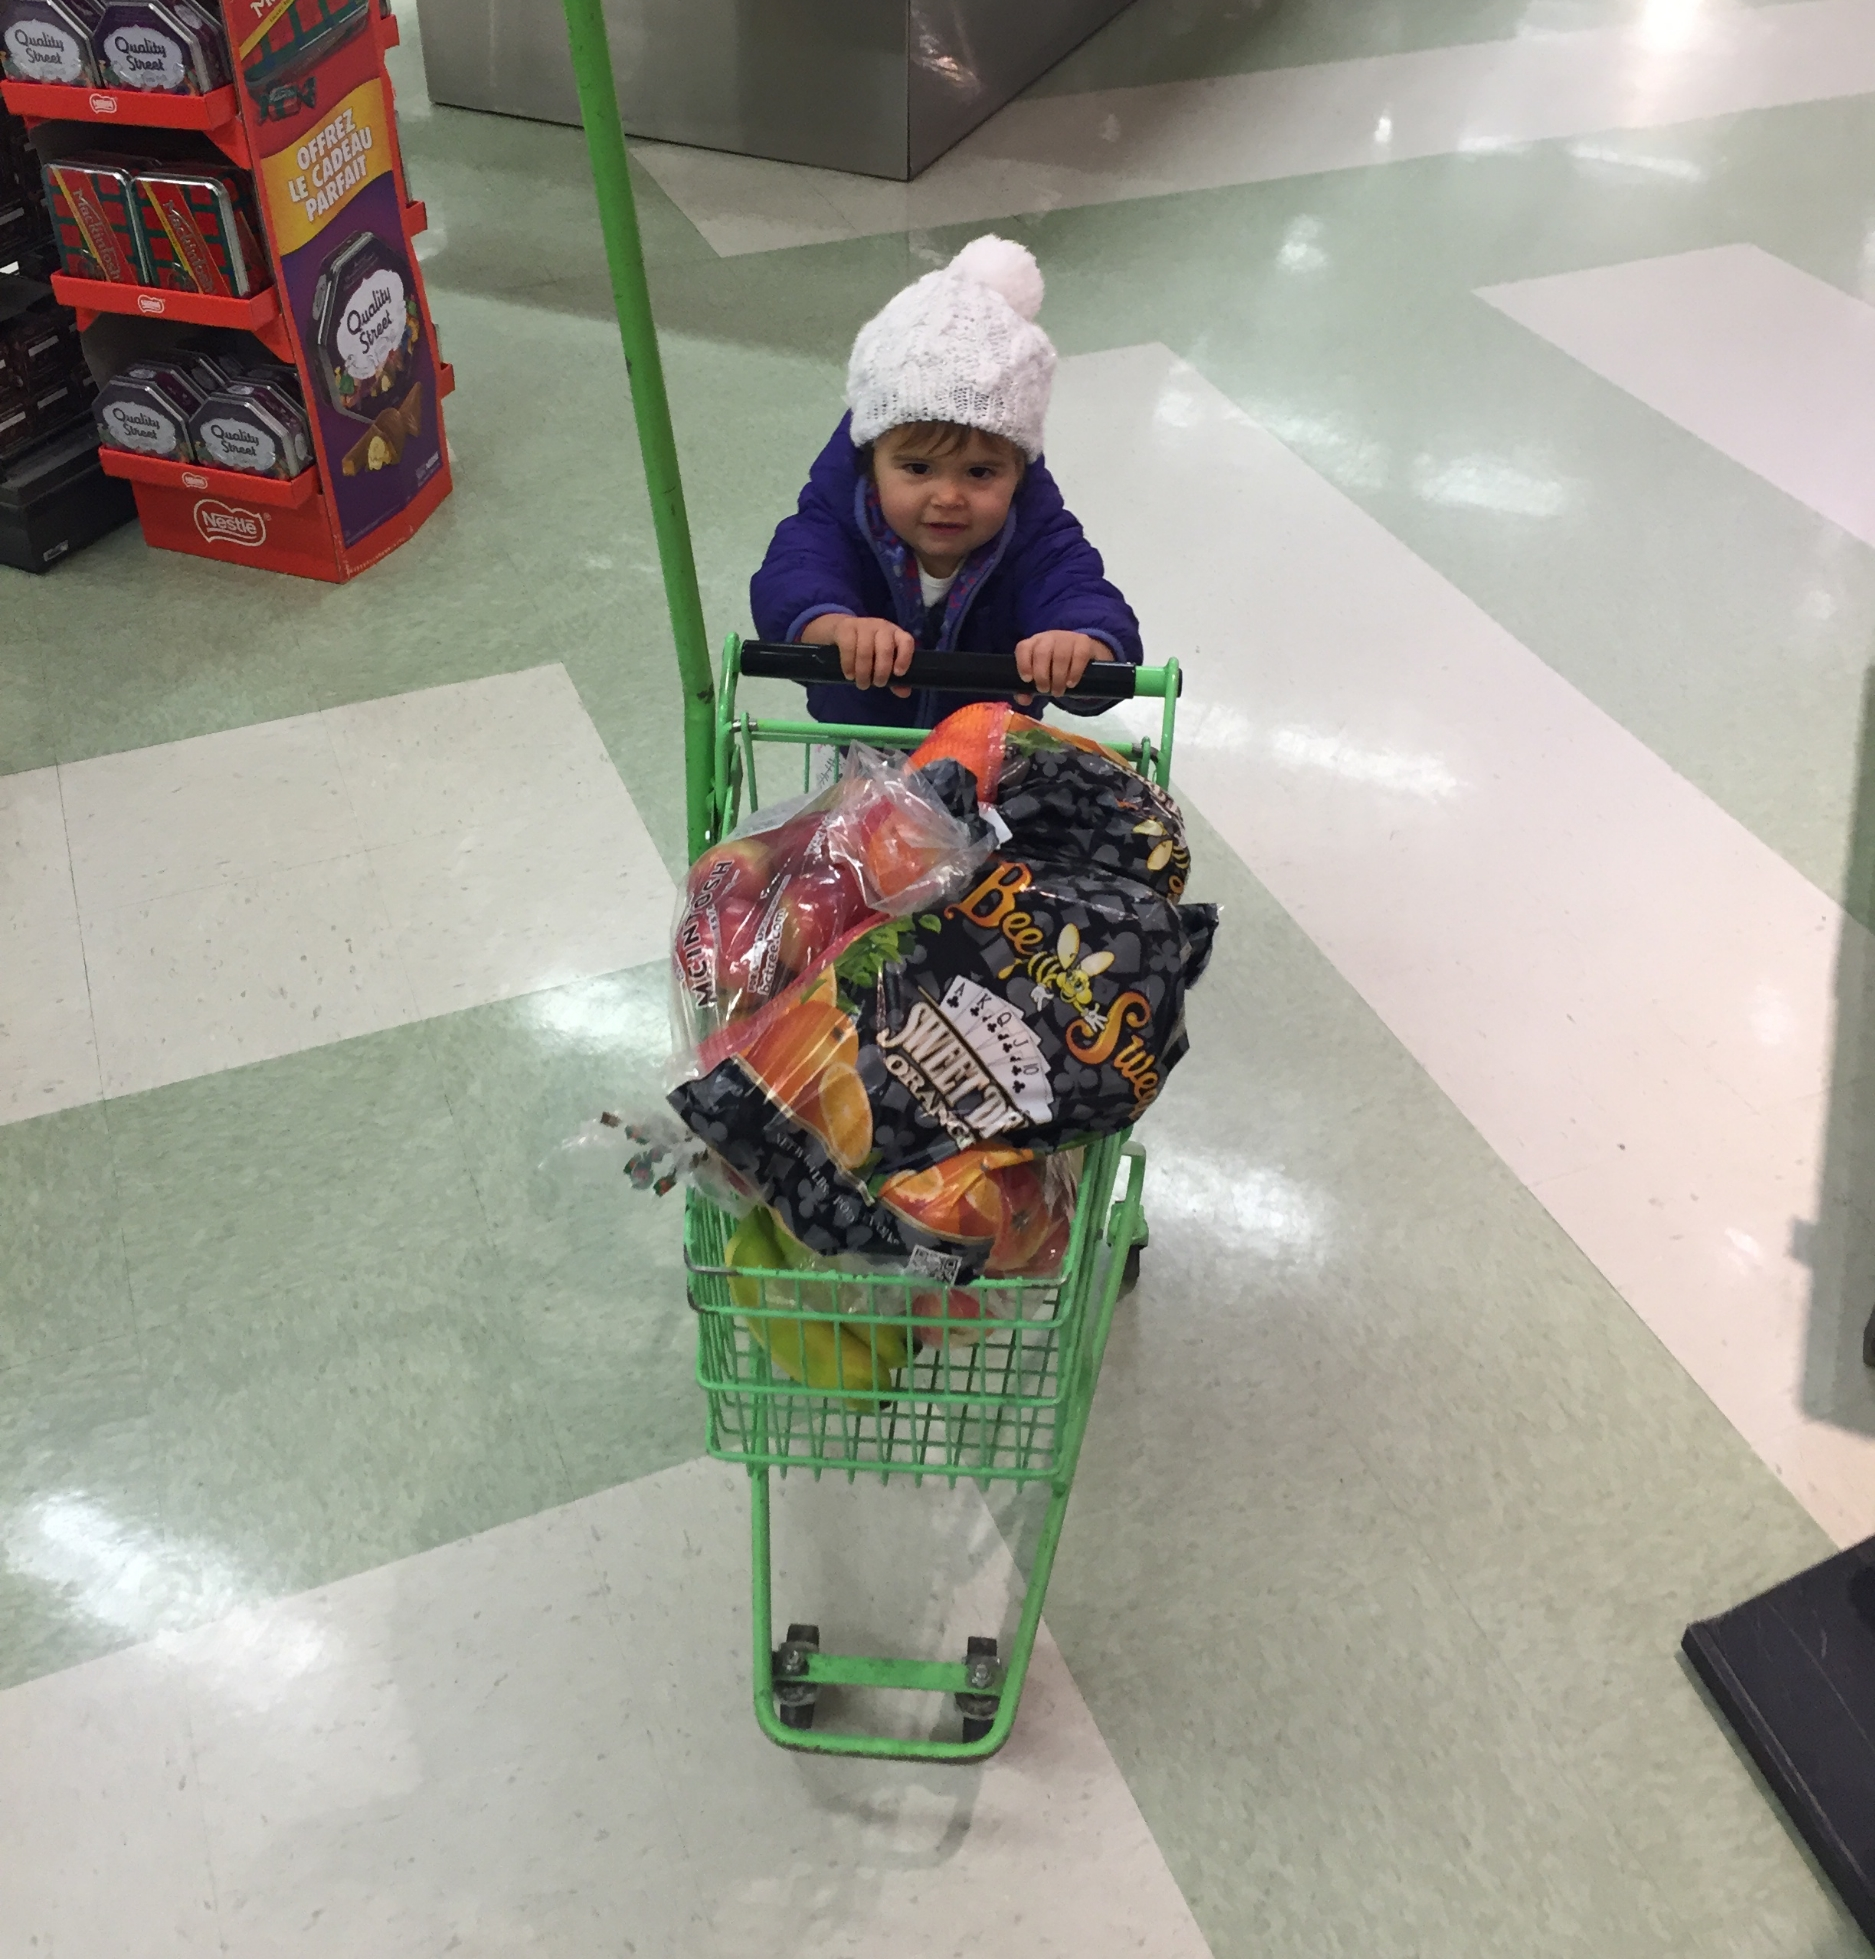 Fiona was a great help shopping the first time she tried the cart. The second time, she caught on to the fact that anything could be taken off the shelf and put into said cart, which was not so helpful.